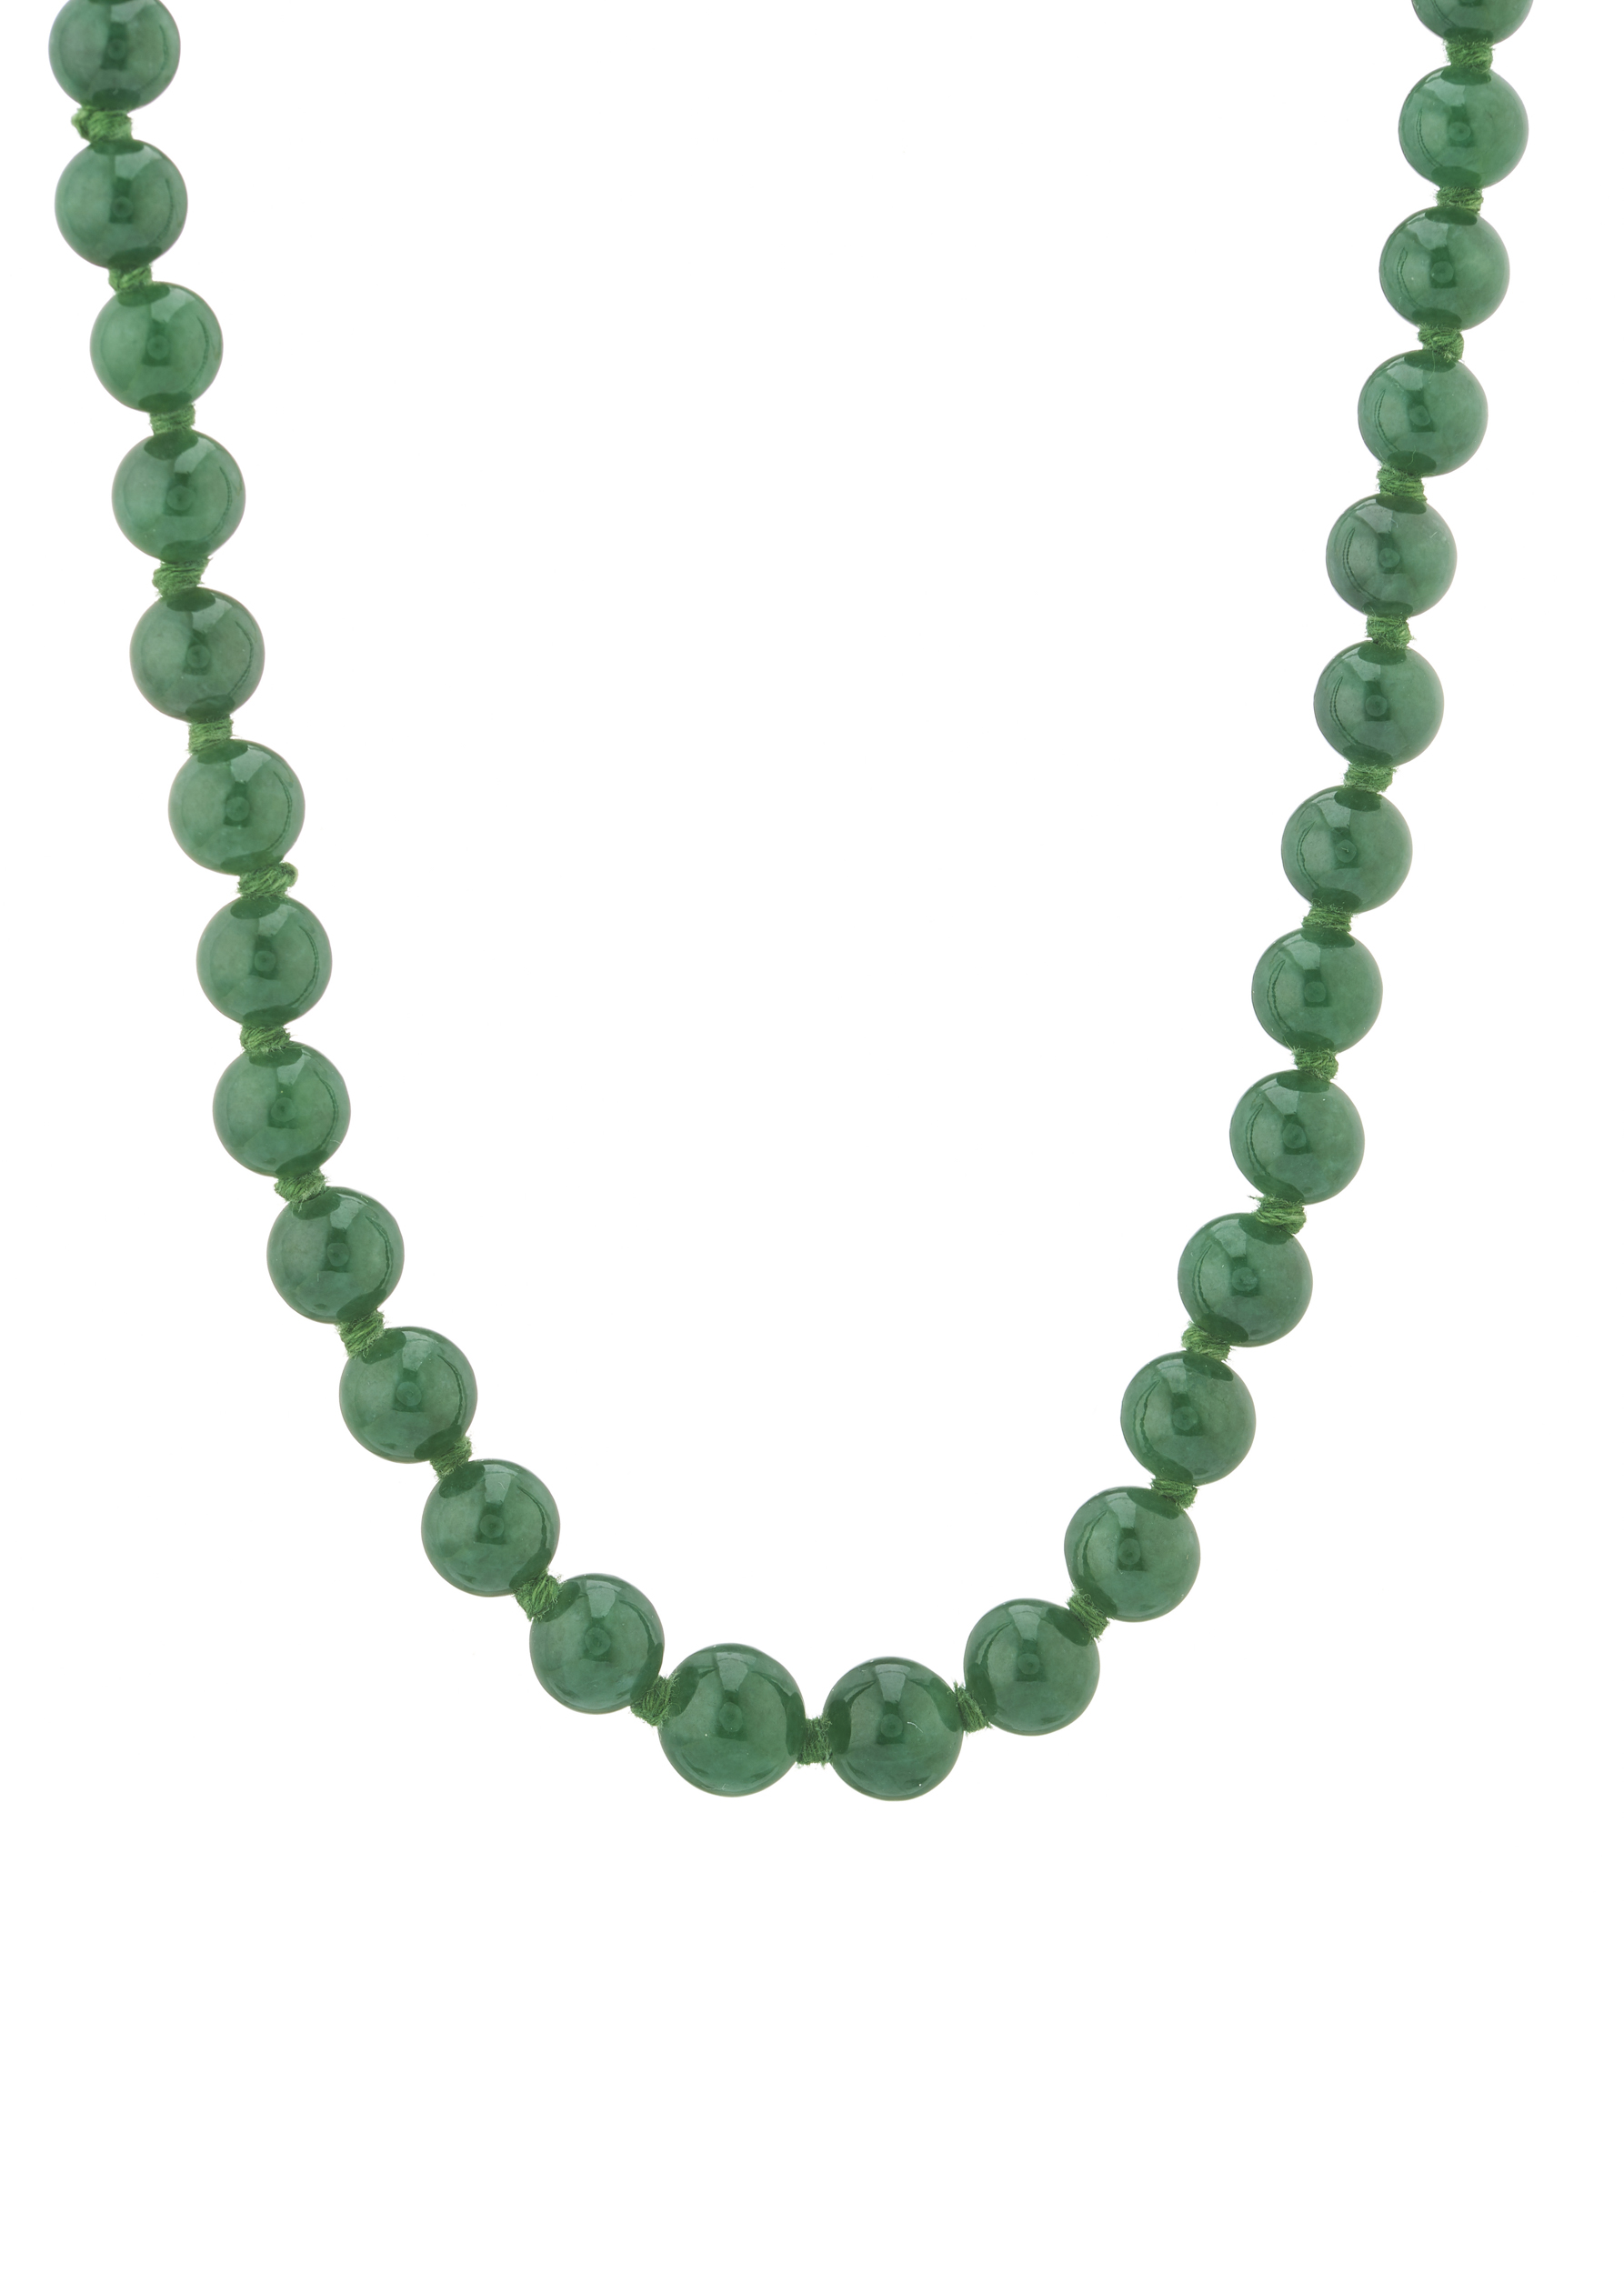 A natural jadeite jade bead necklace, with 9ct gold clasp